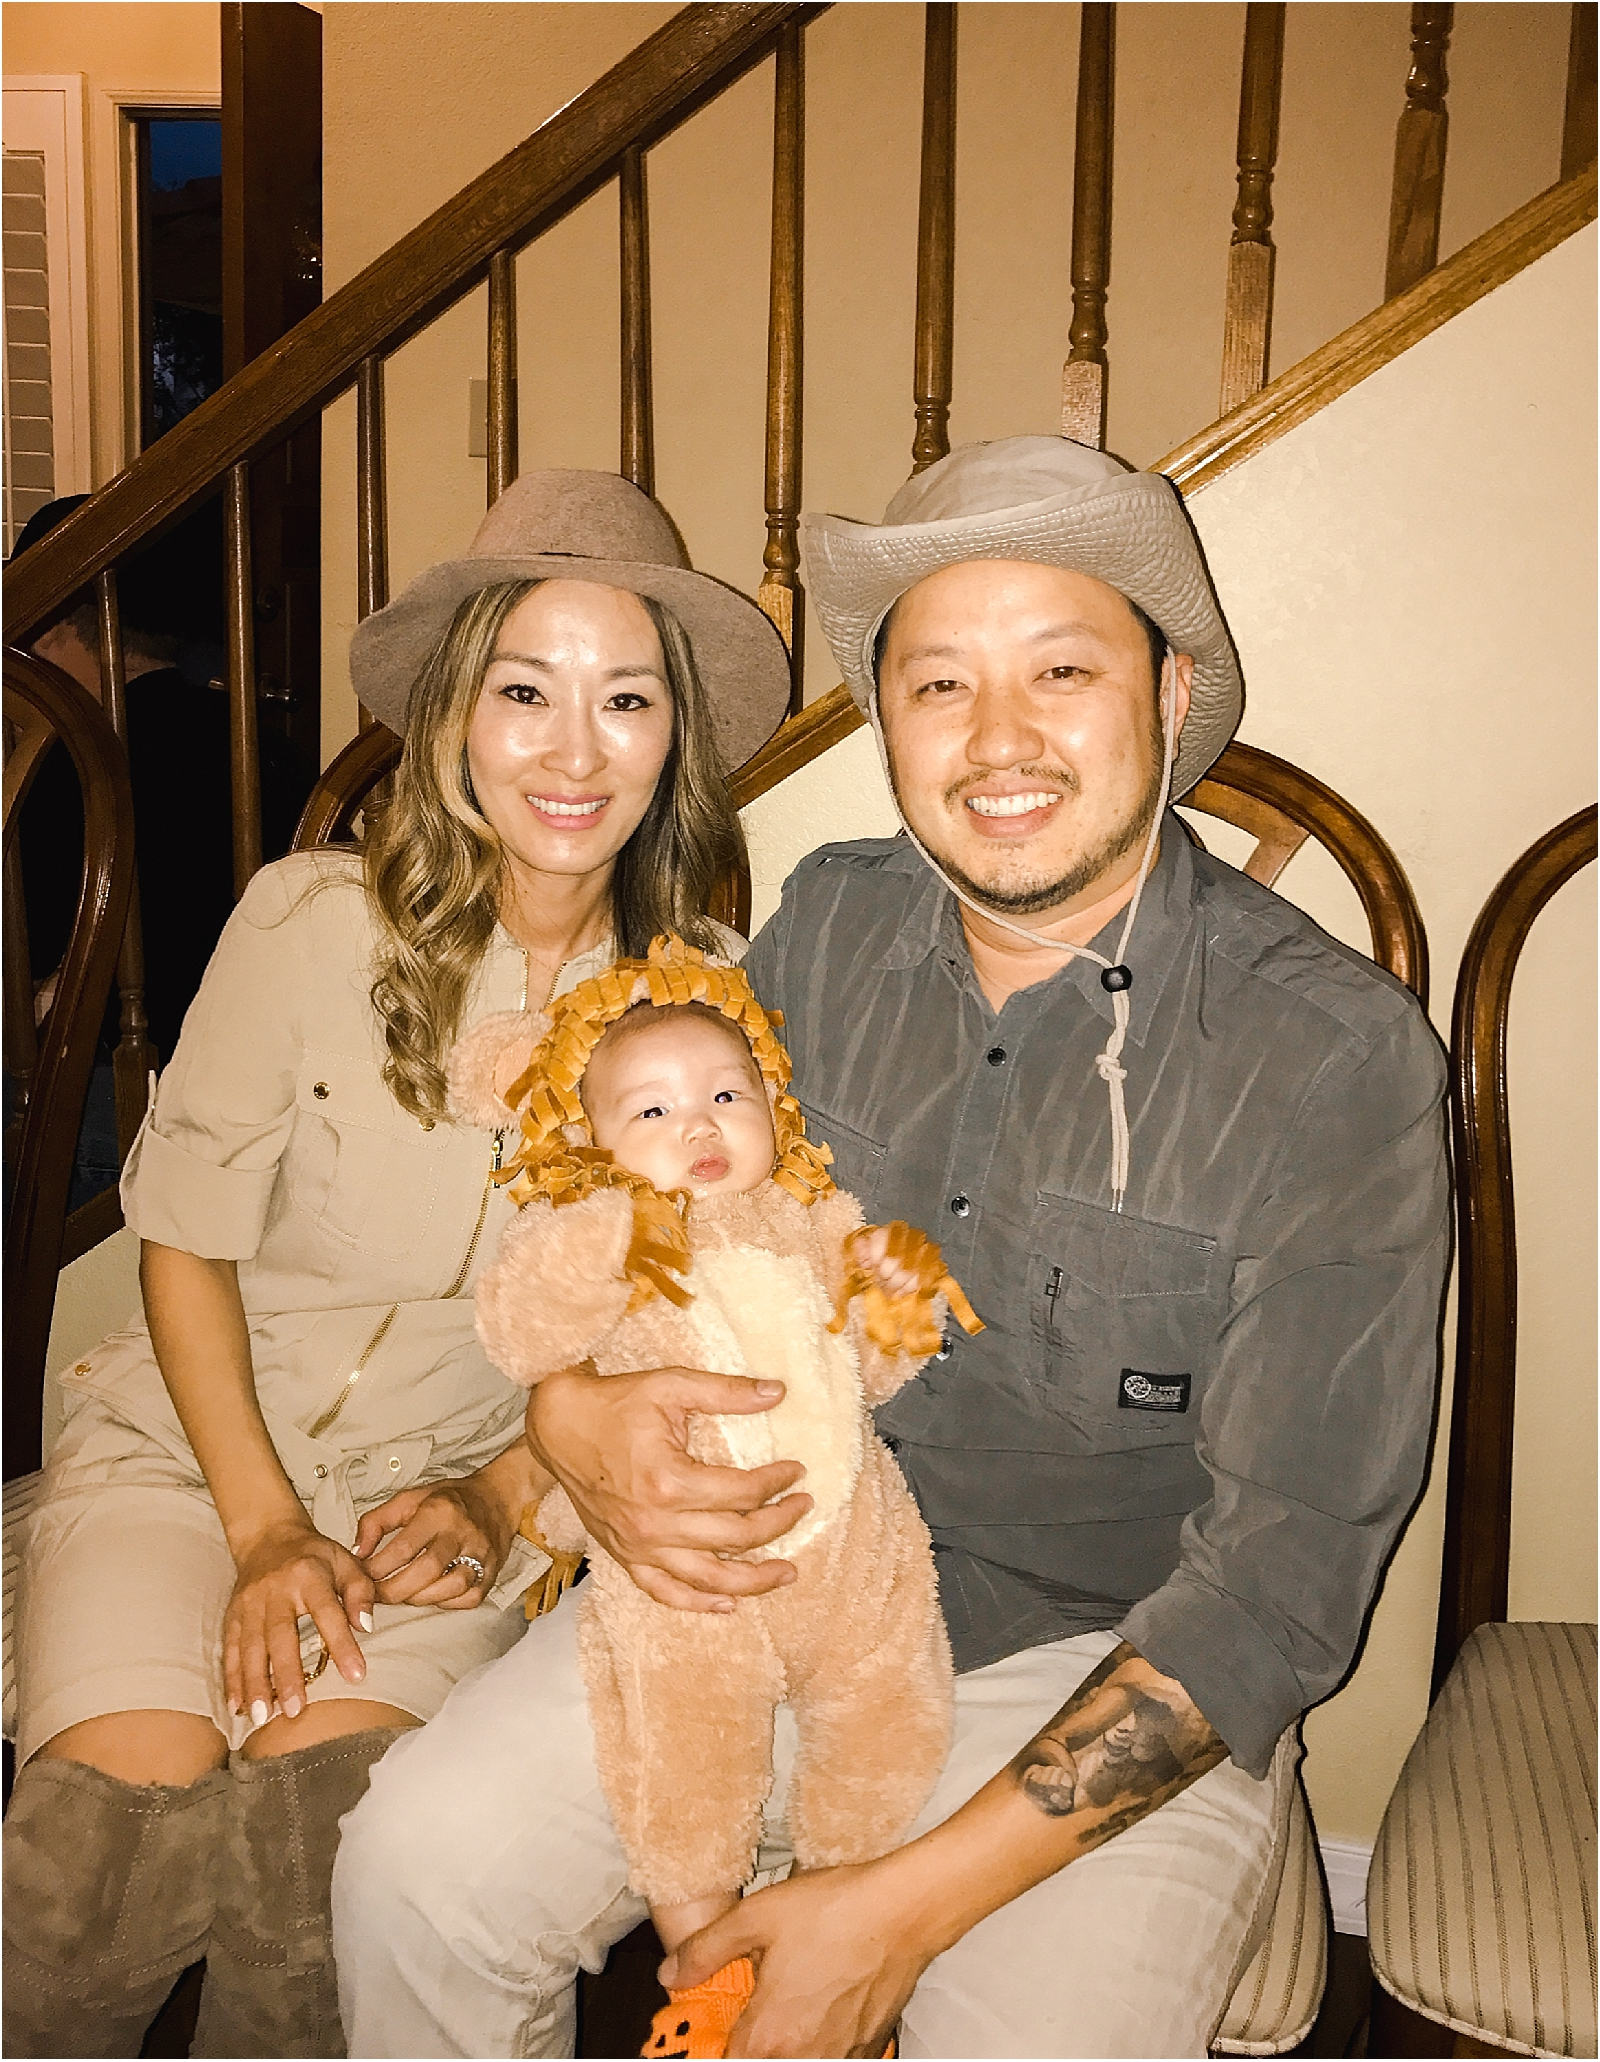 Halloween-zoo-keeper-safari-family-costume